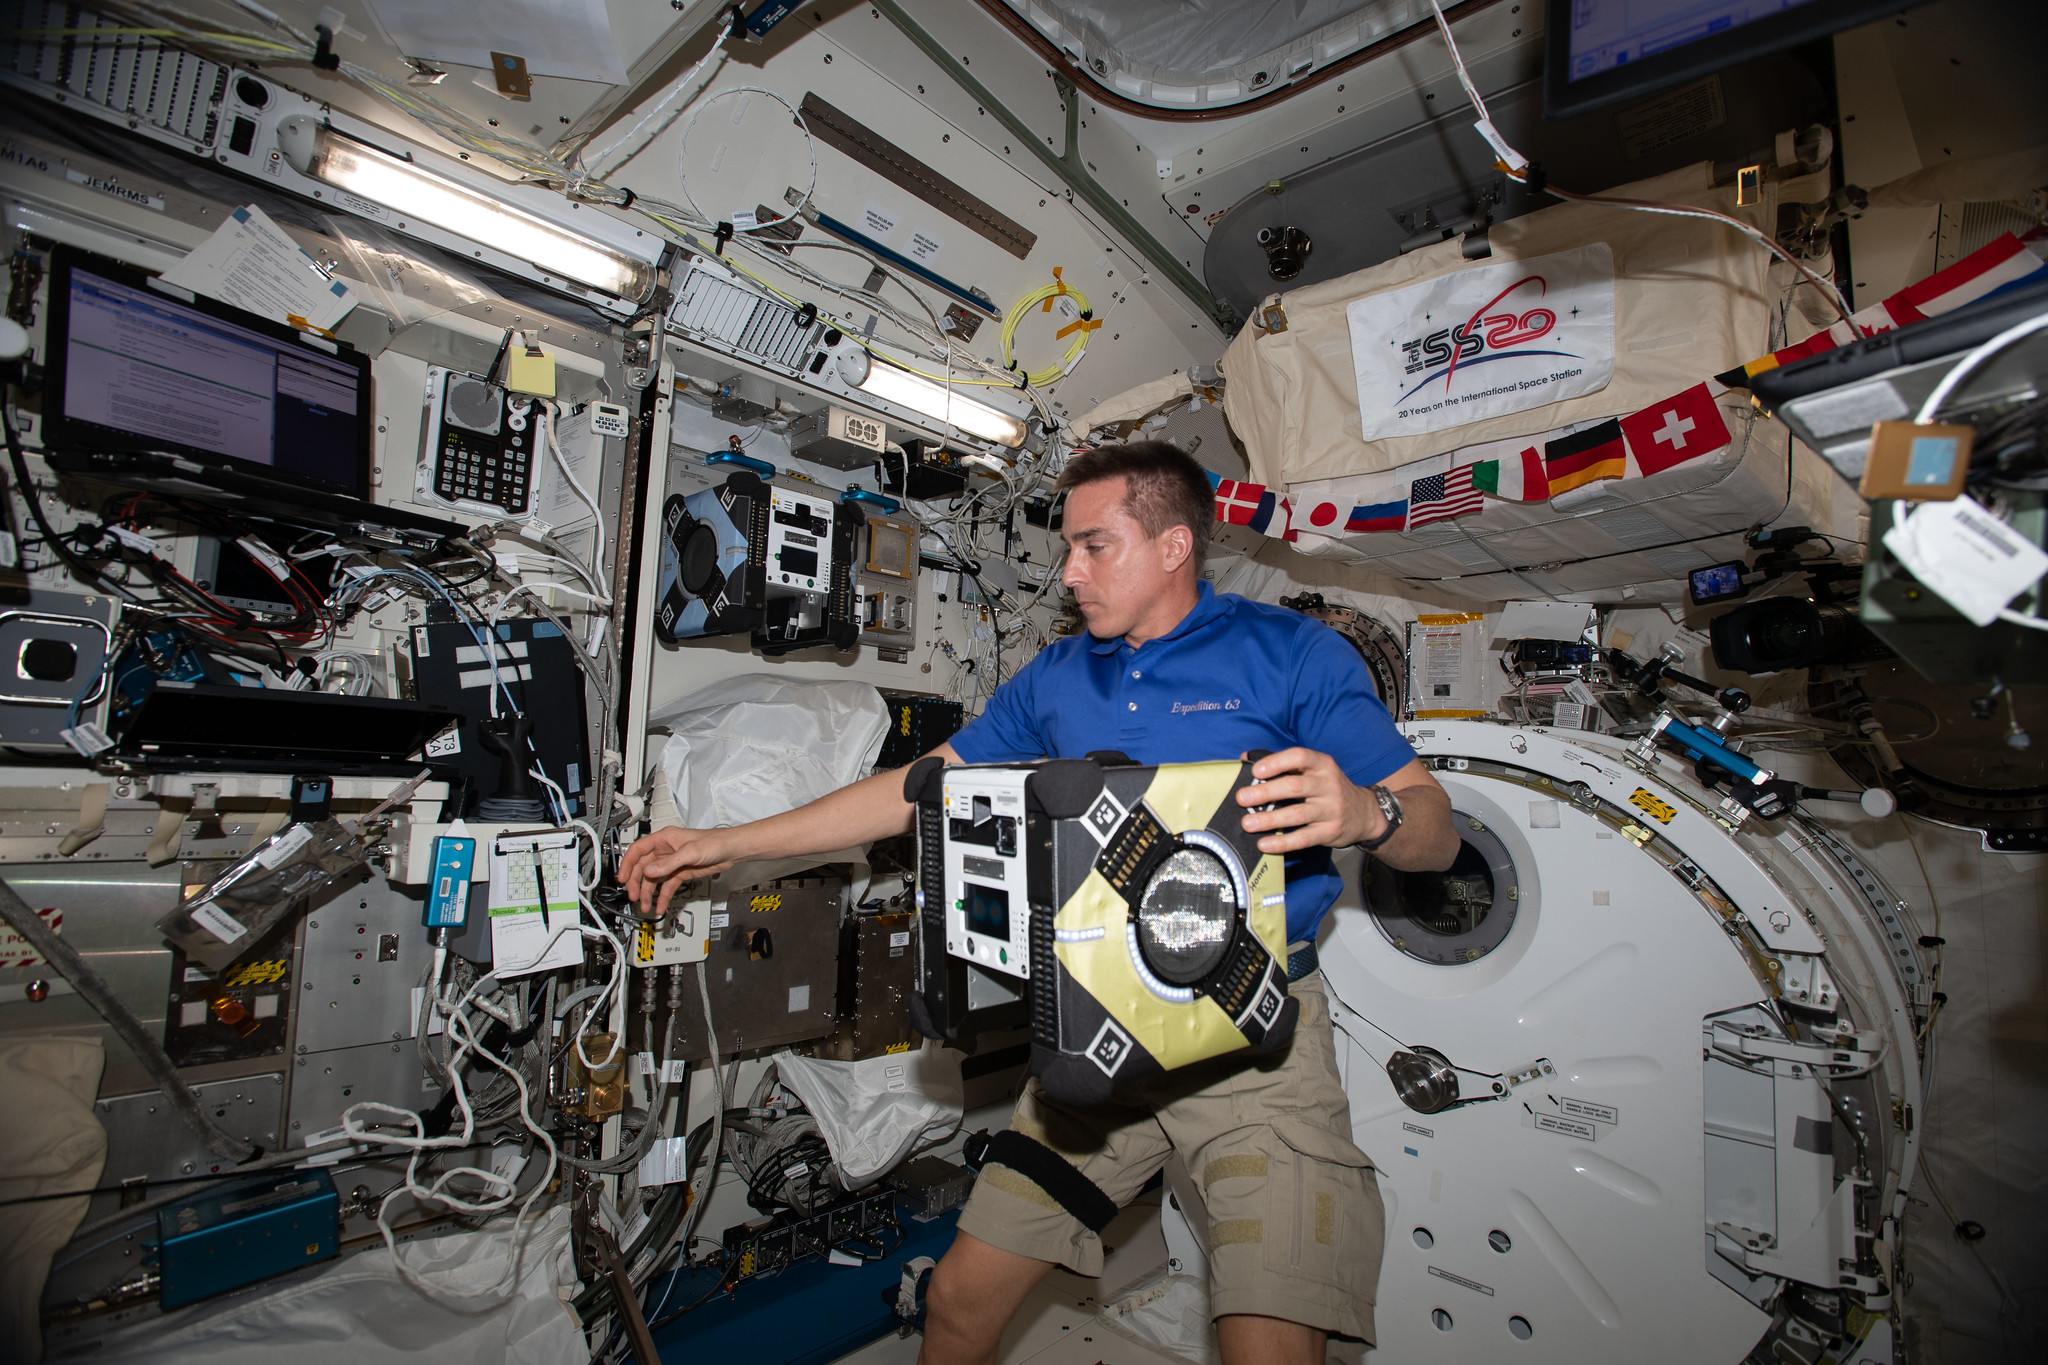 NASA astronaut and Expedition 63 Commander Chris Cassidy sets up an Astrobee robotic assistant